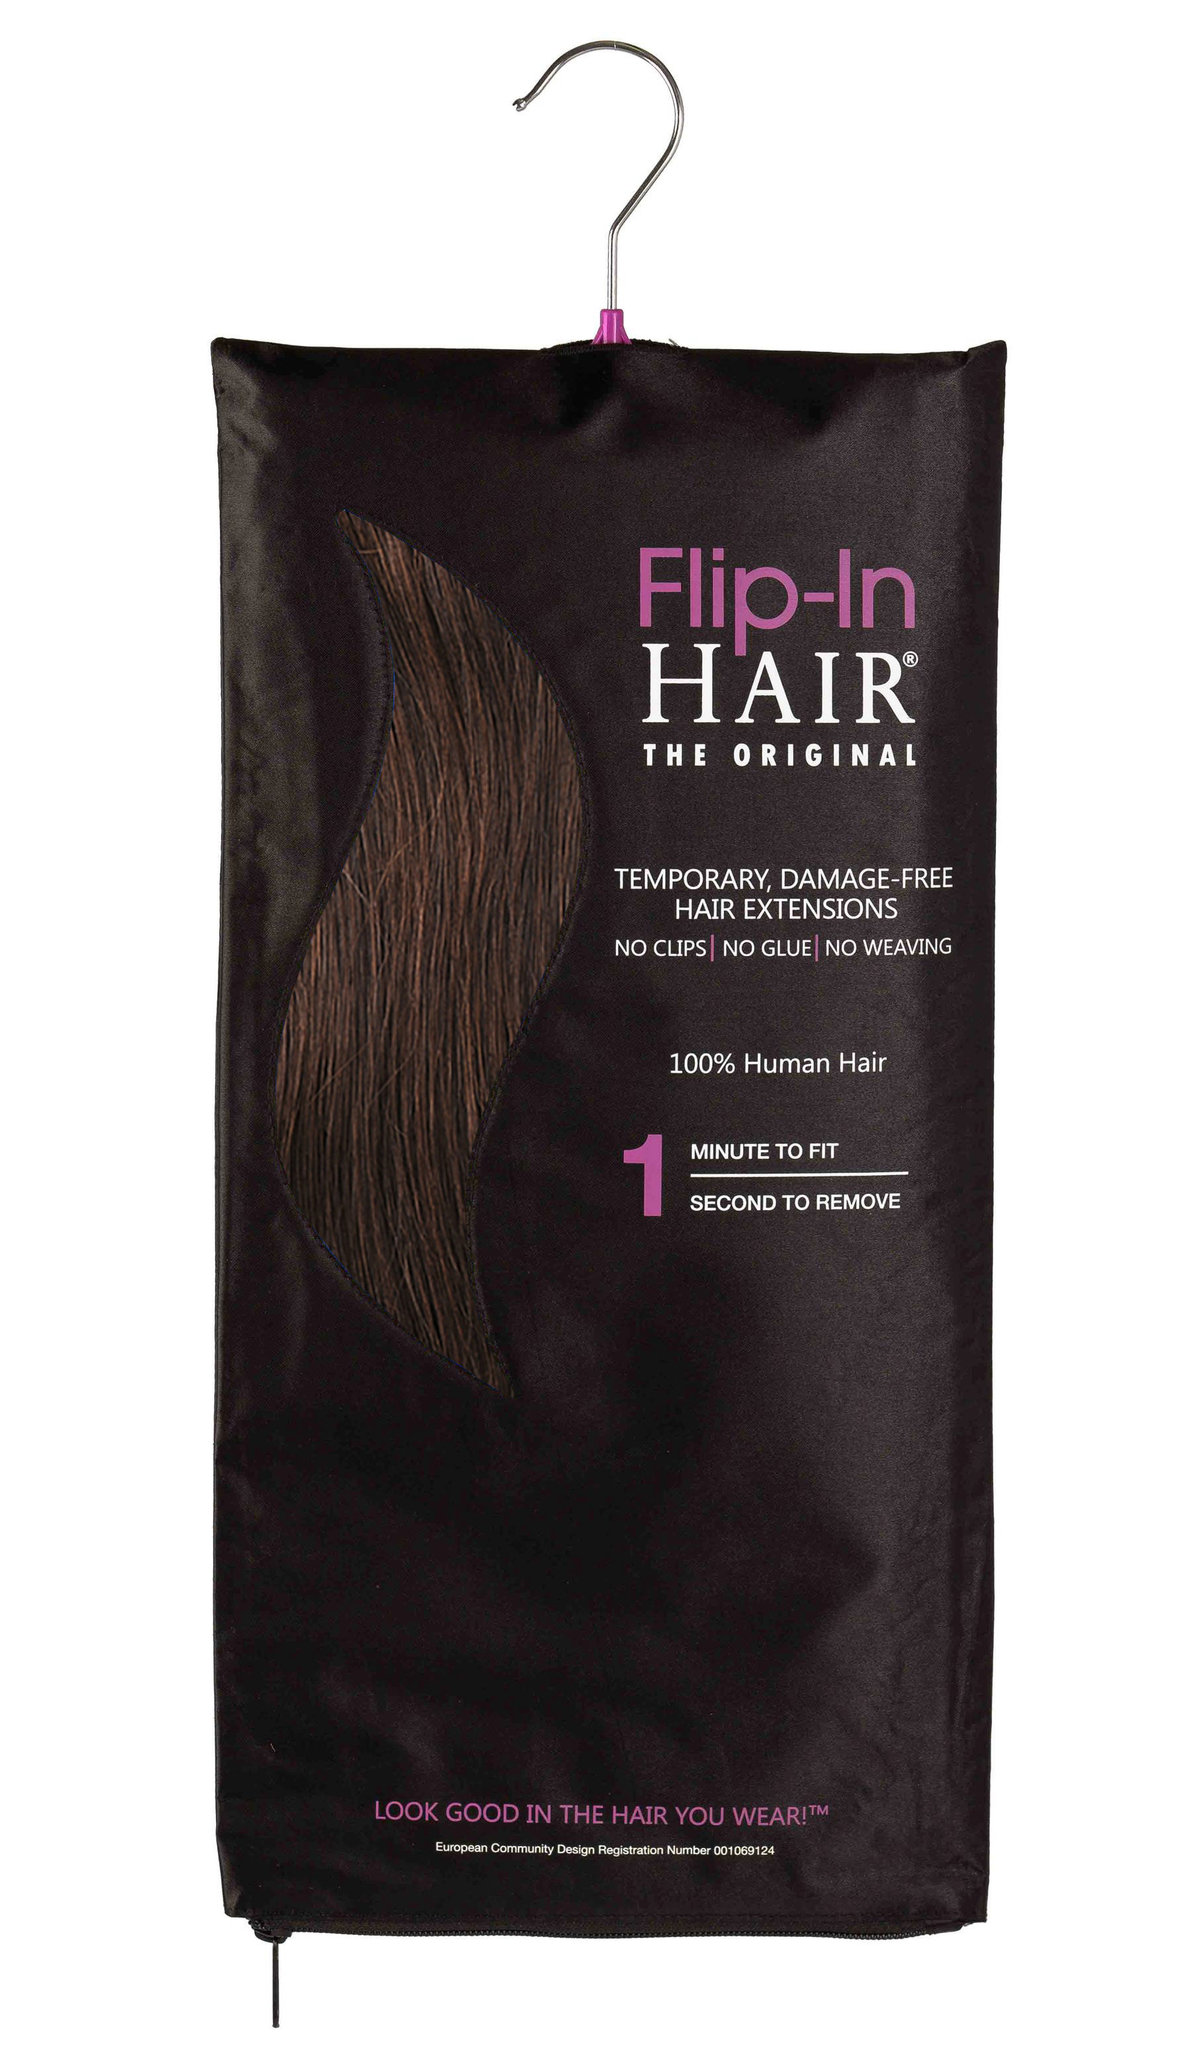 Flip-In Hair Original 3